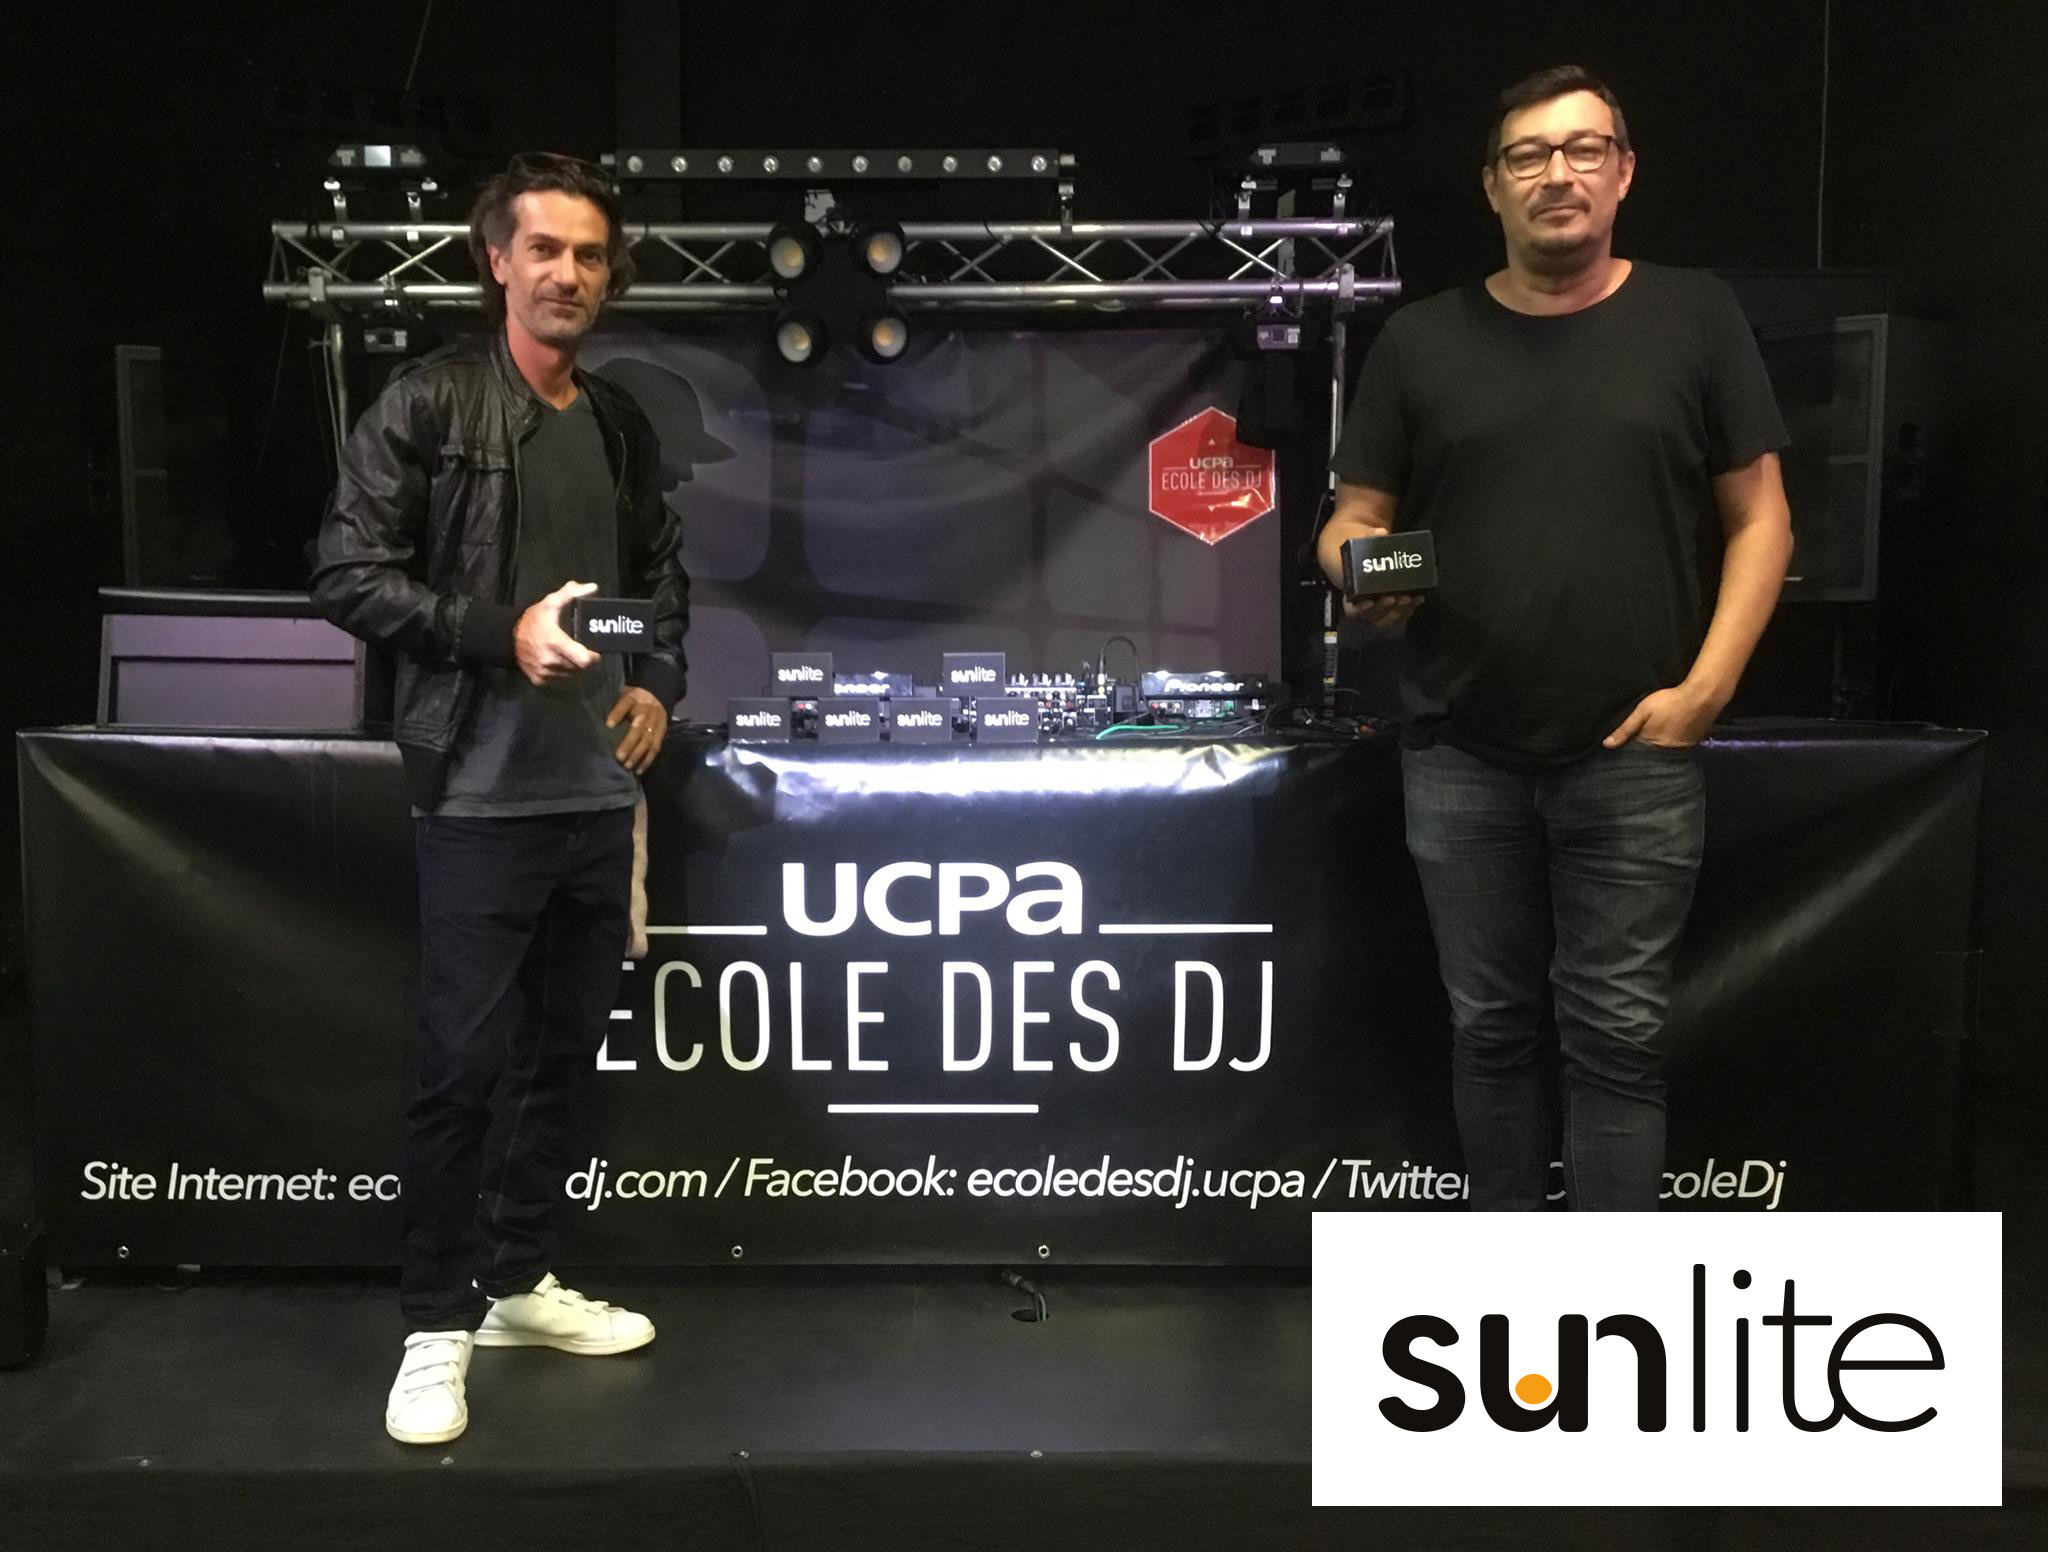 Sunlite software at UCPA DJ school